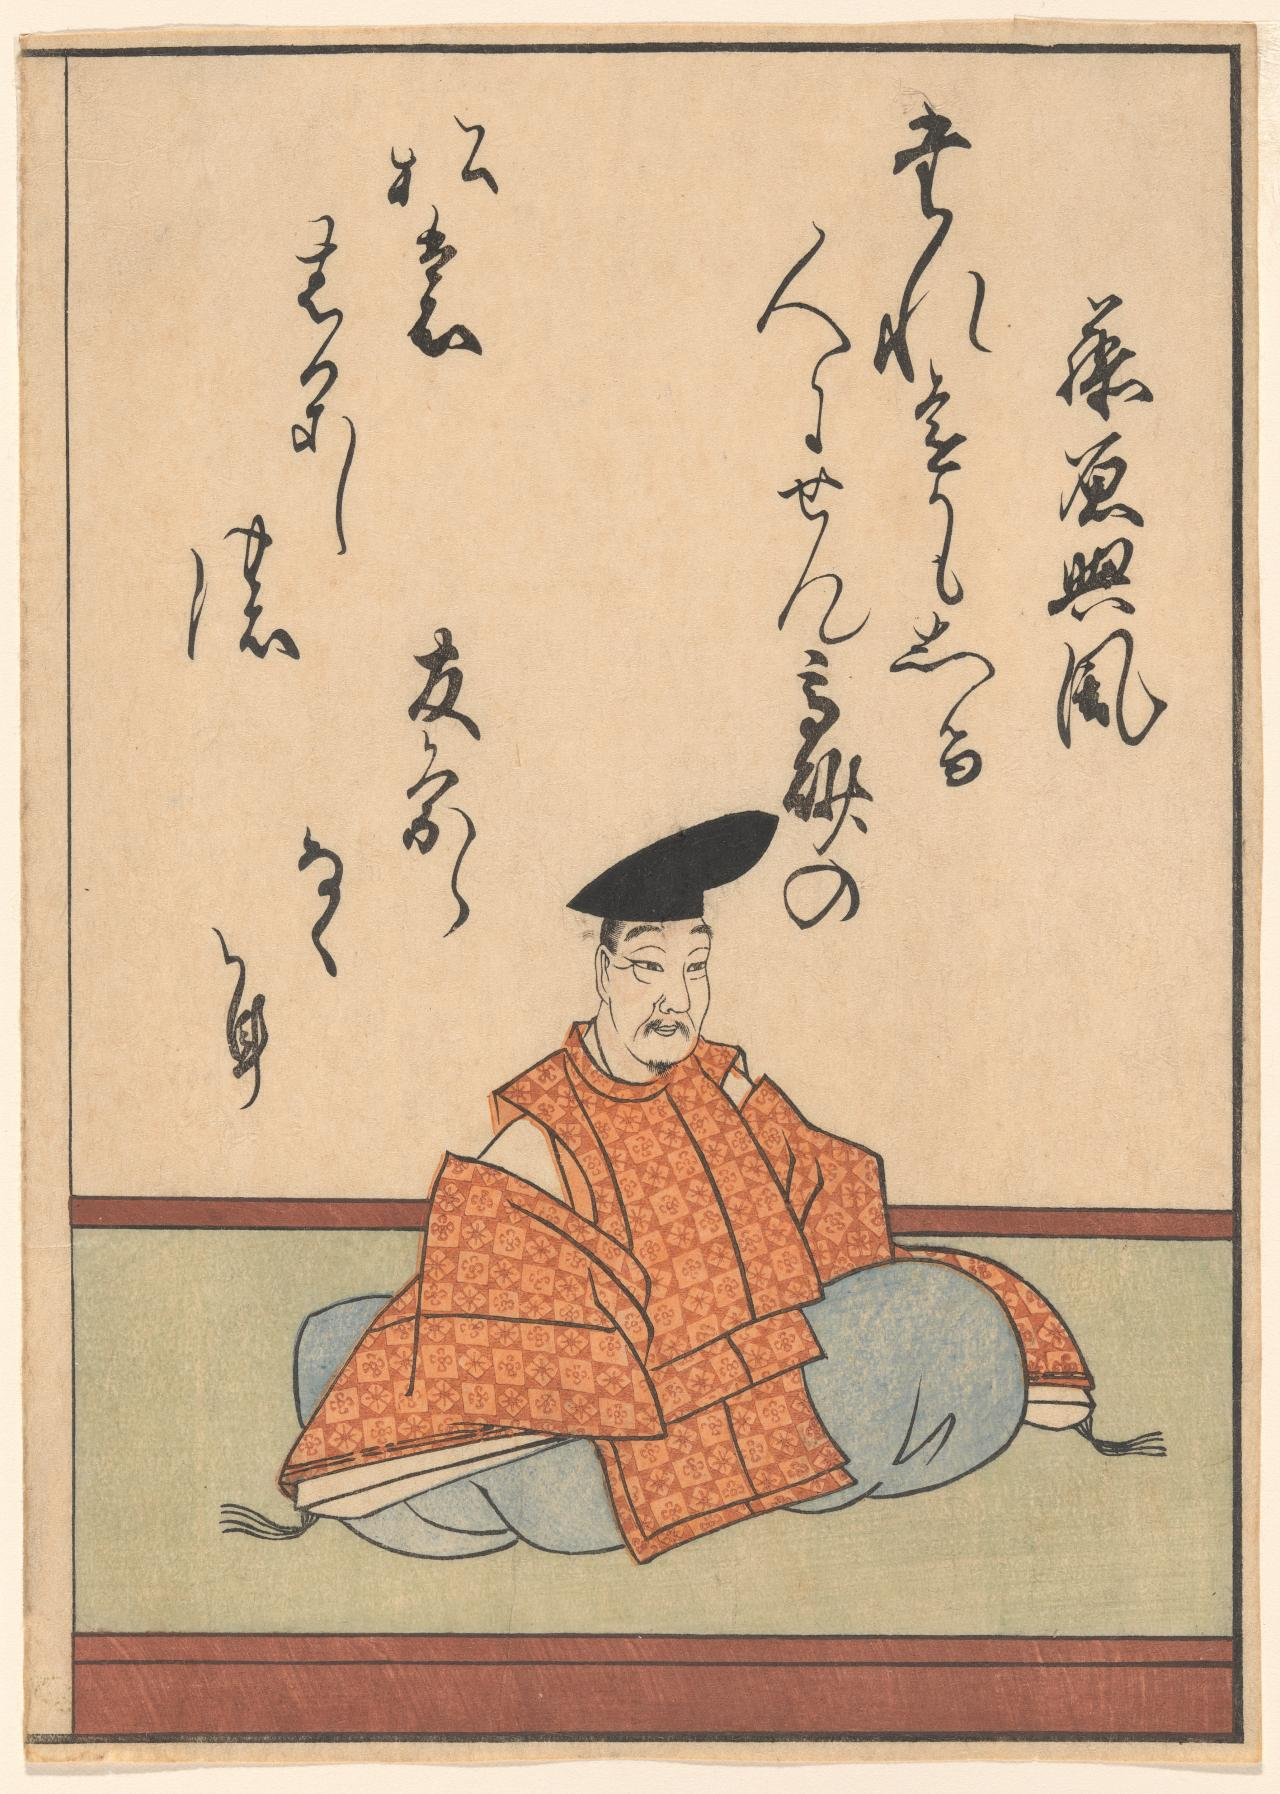 Seated figure looking right in orange robe